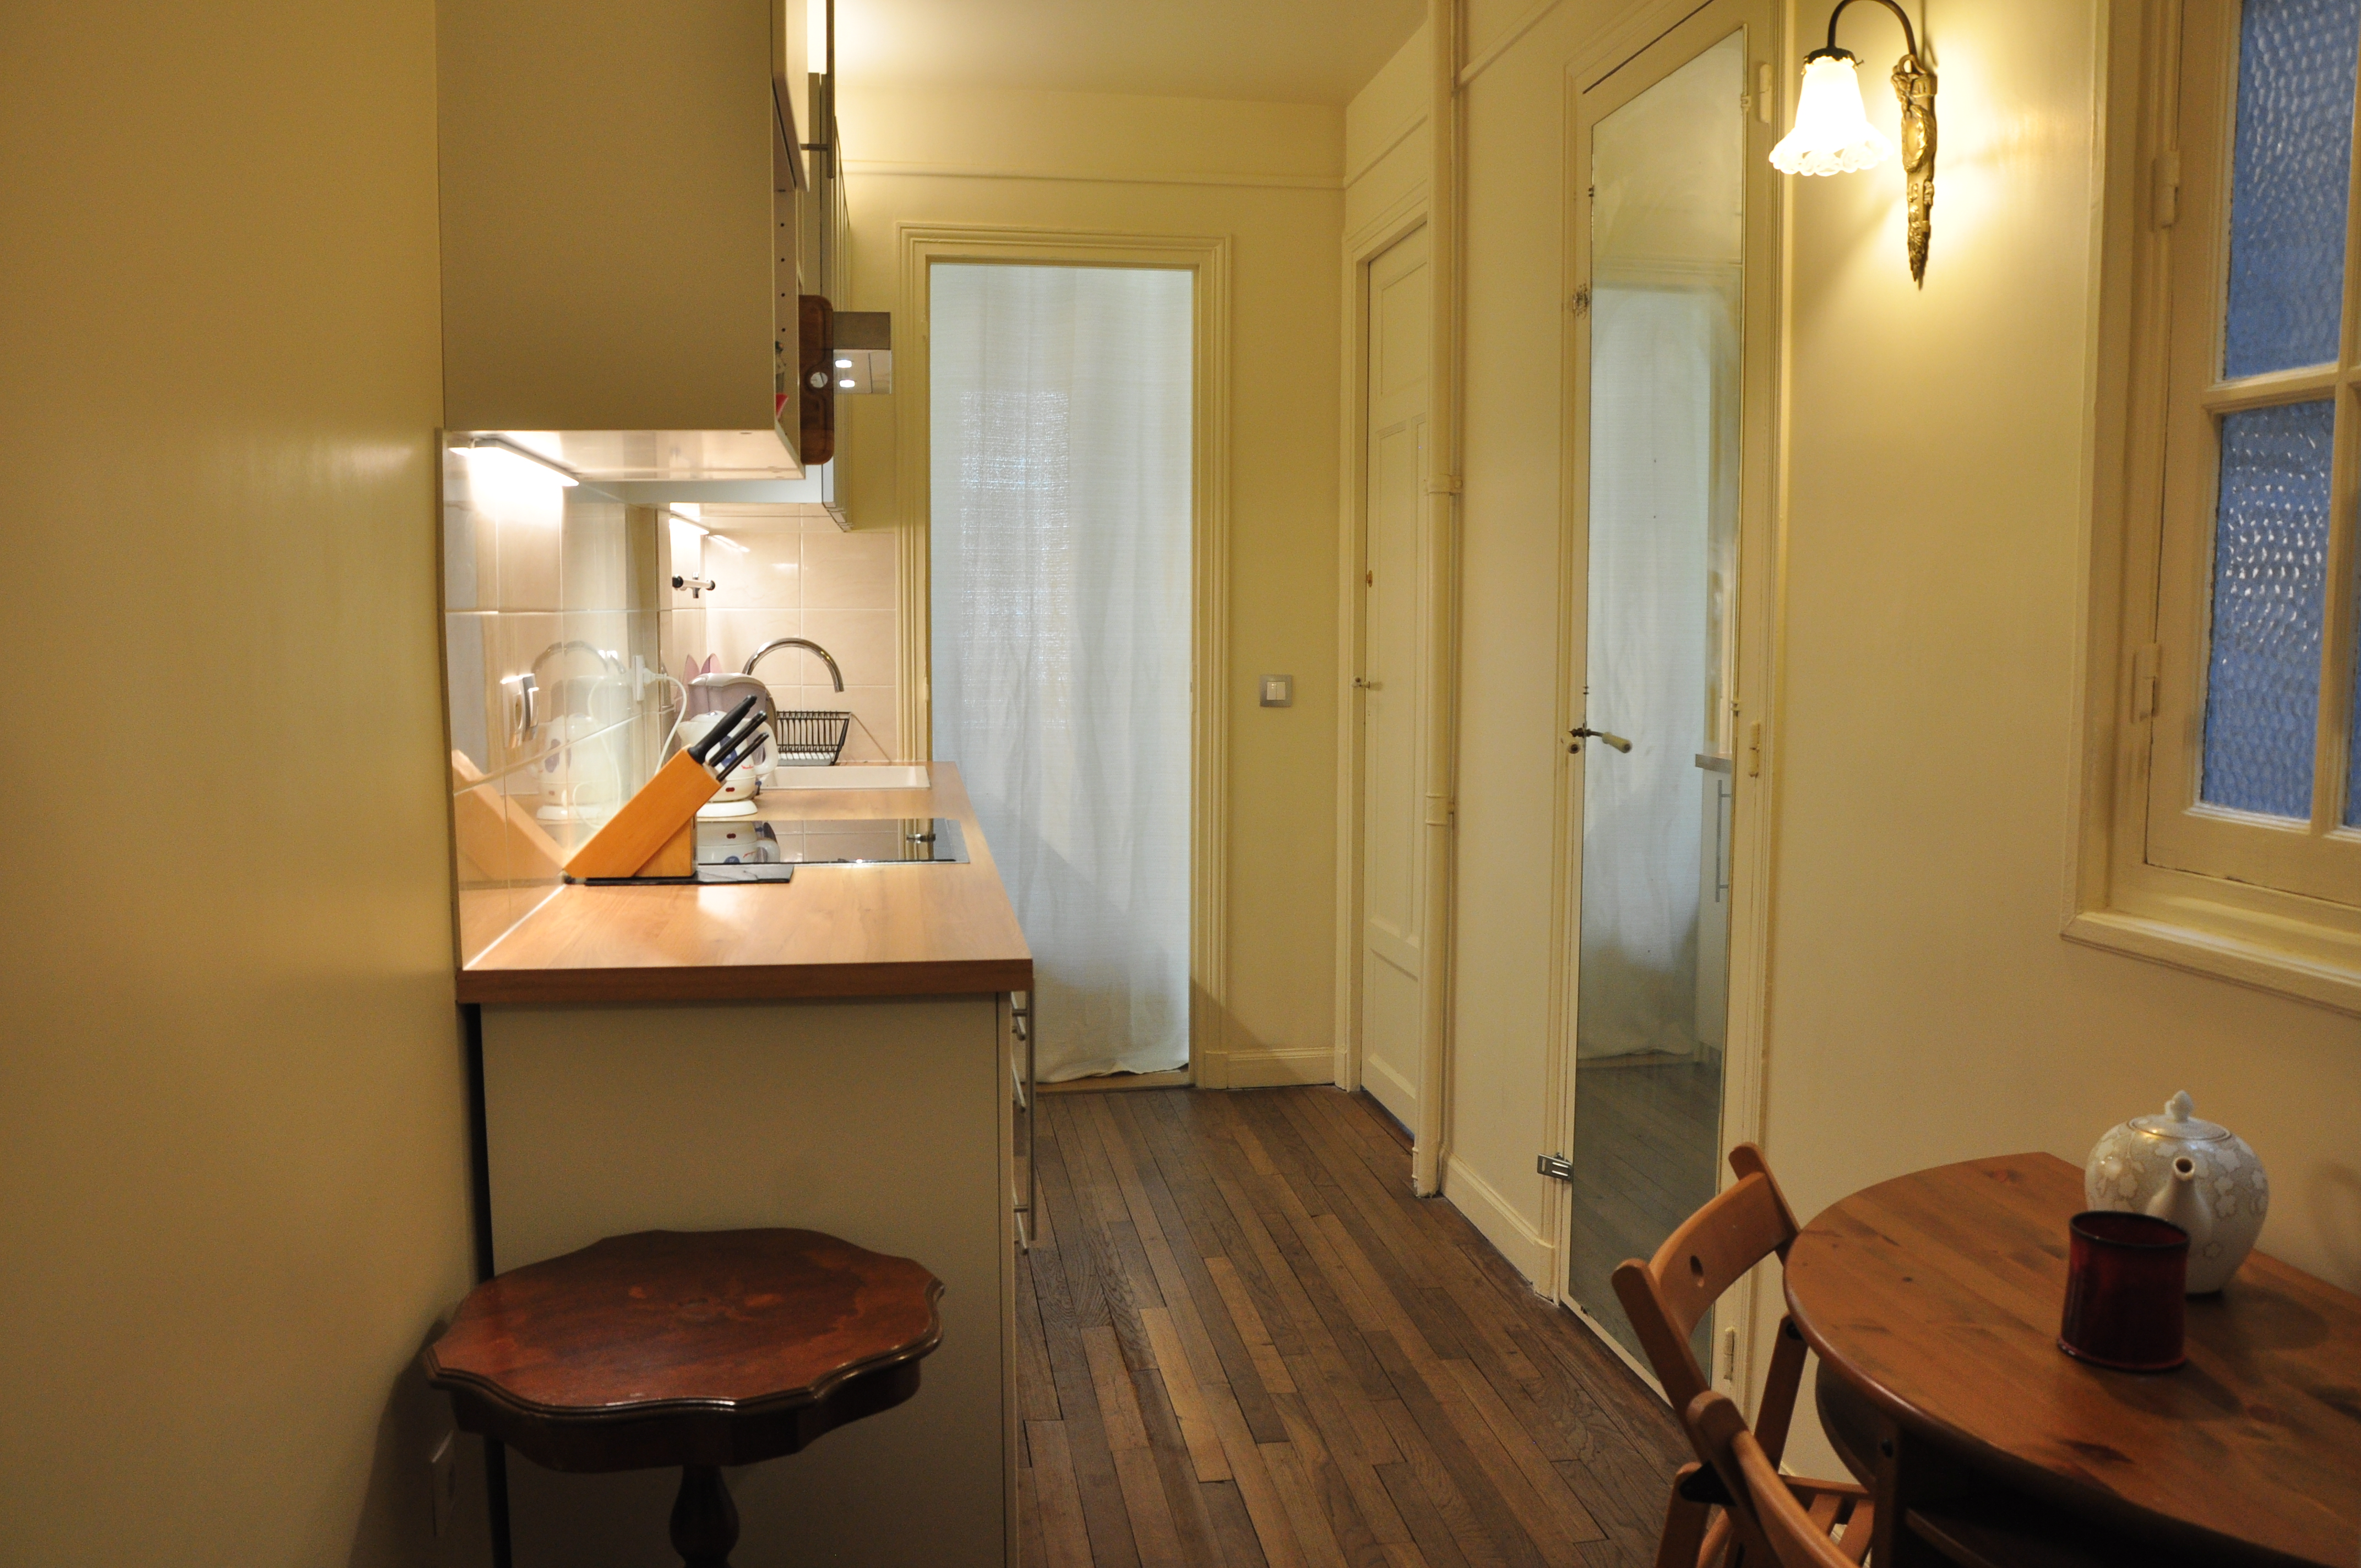 Entire Appartment Arc De Triomphe Champs Elysee Apartments For